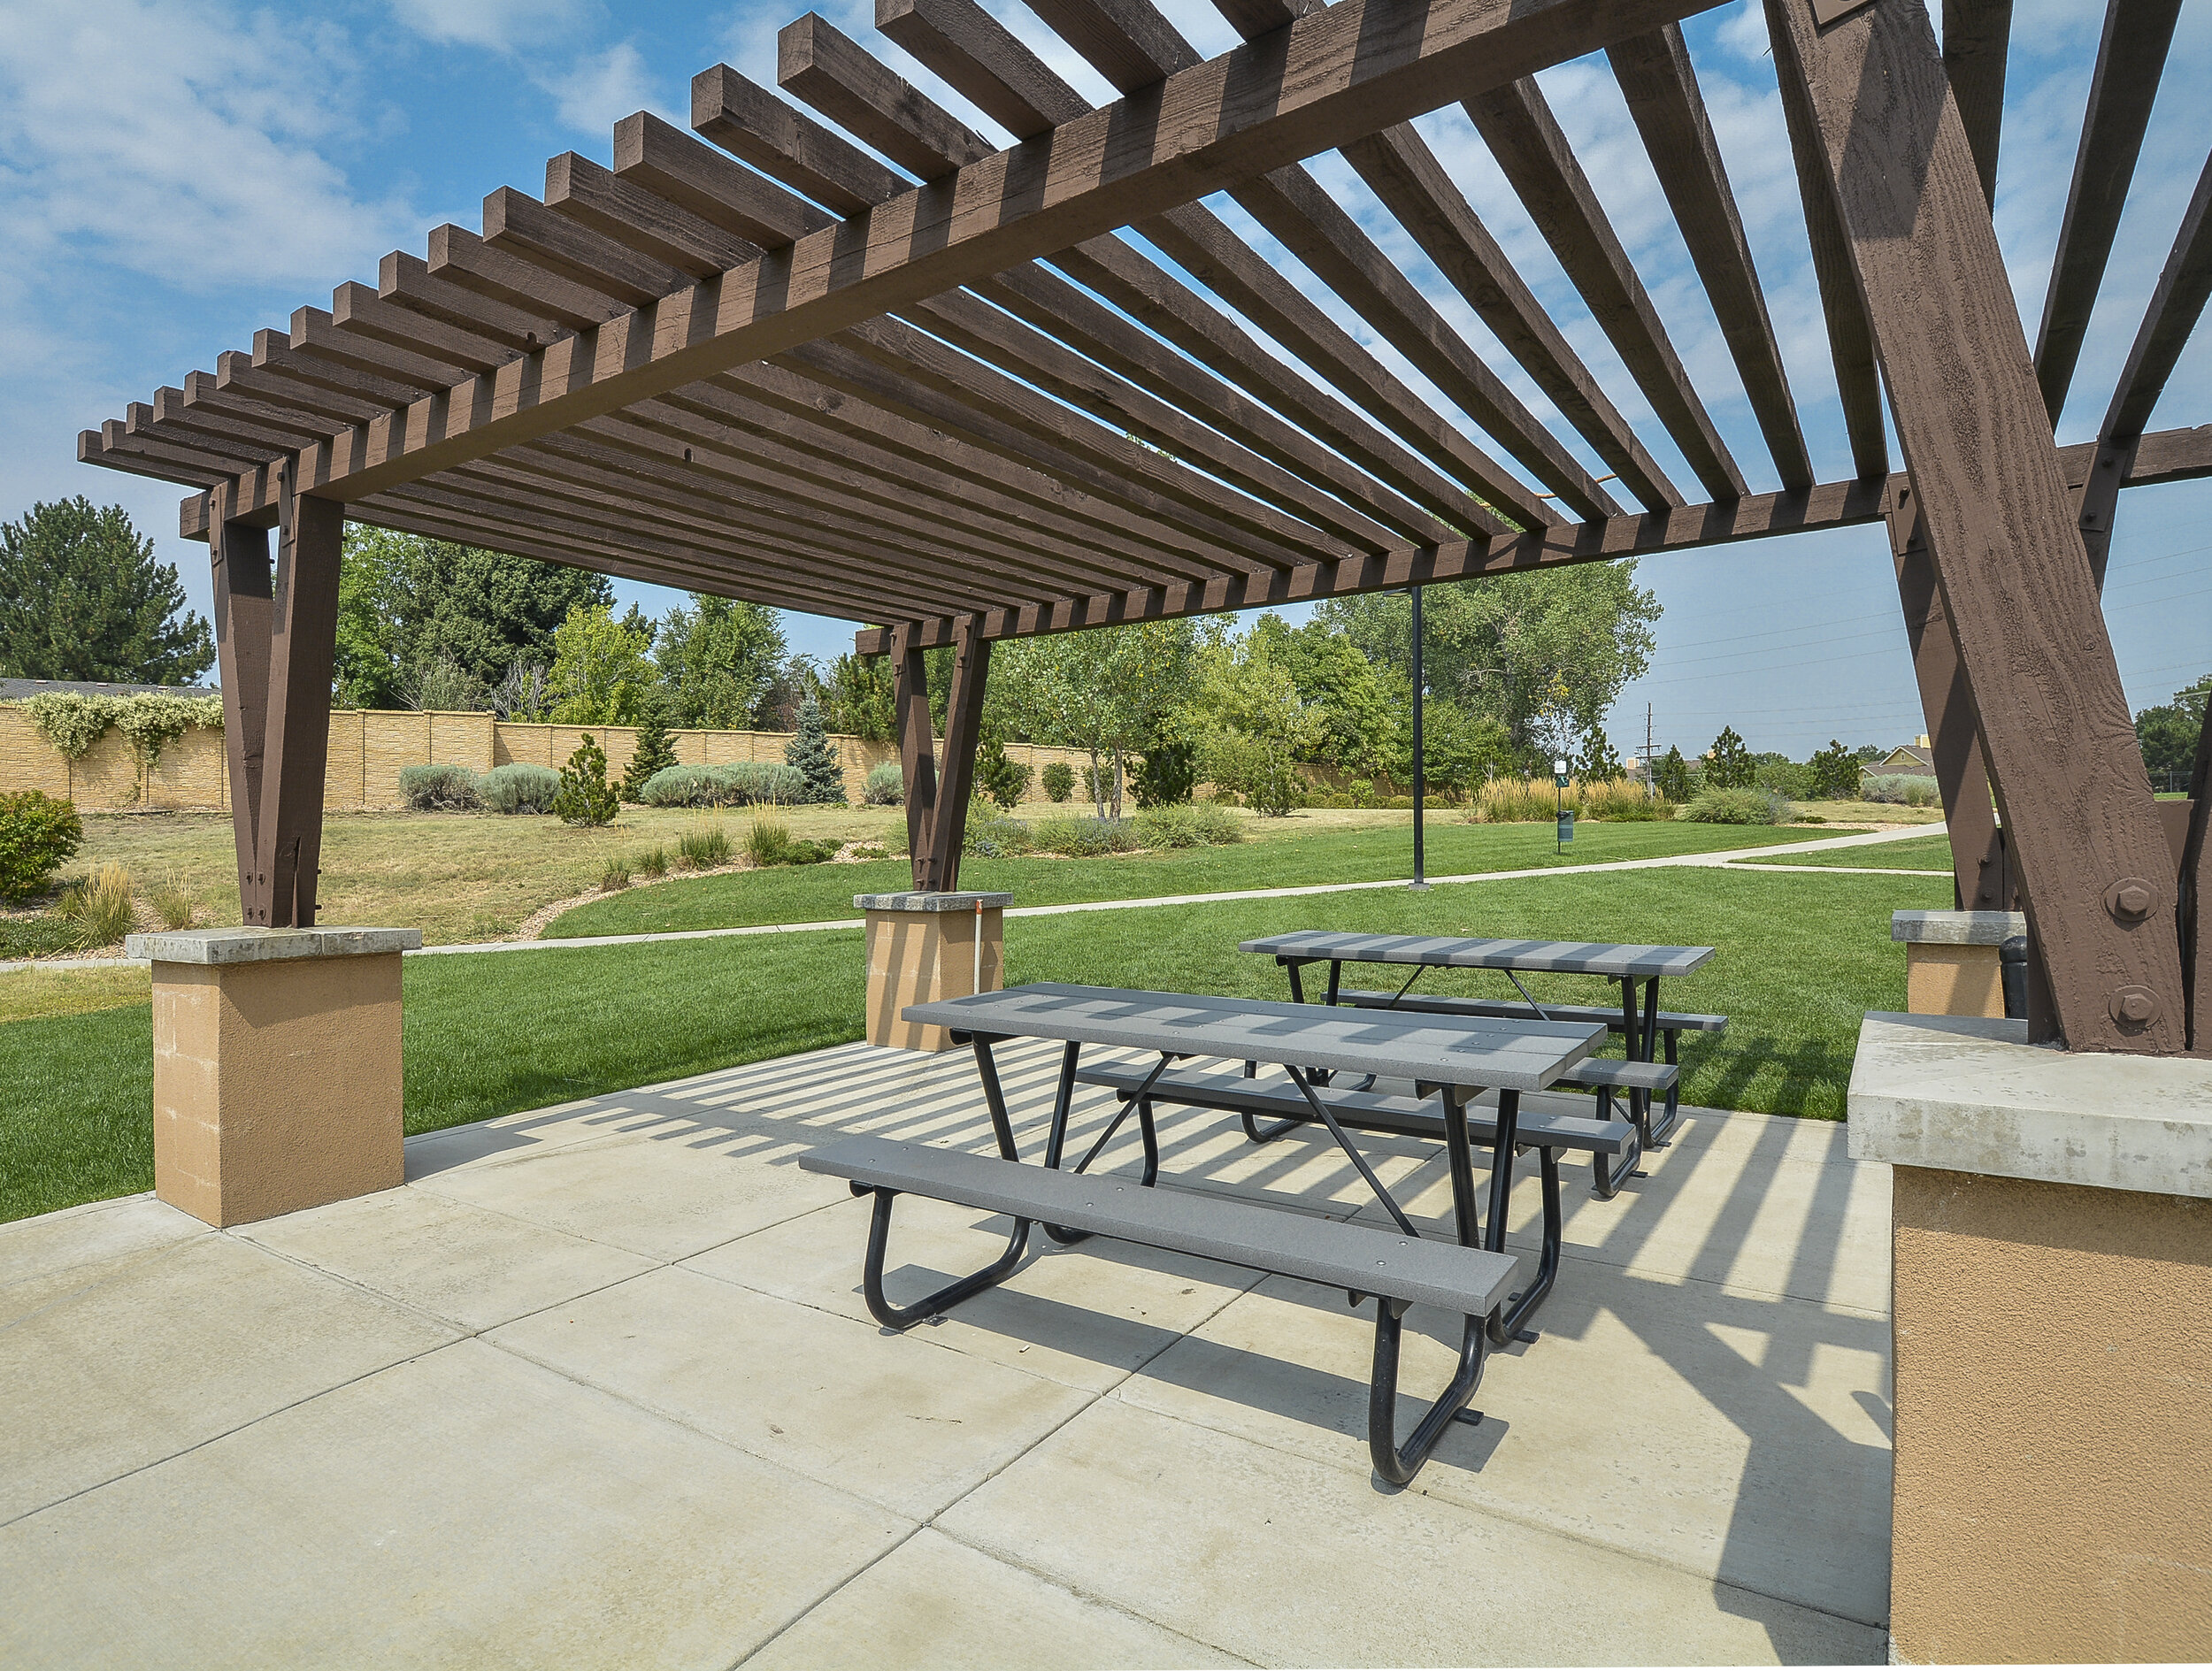 22-Outdoor Picnic Area Runs Along the Private Walking Path Leading the.jpg